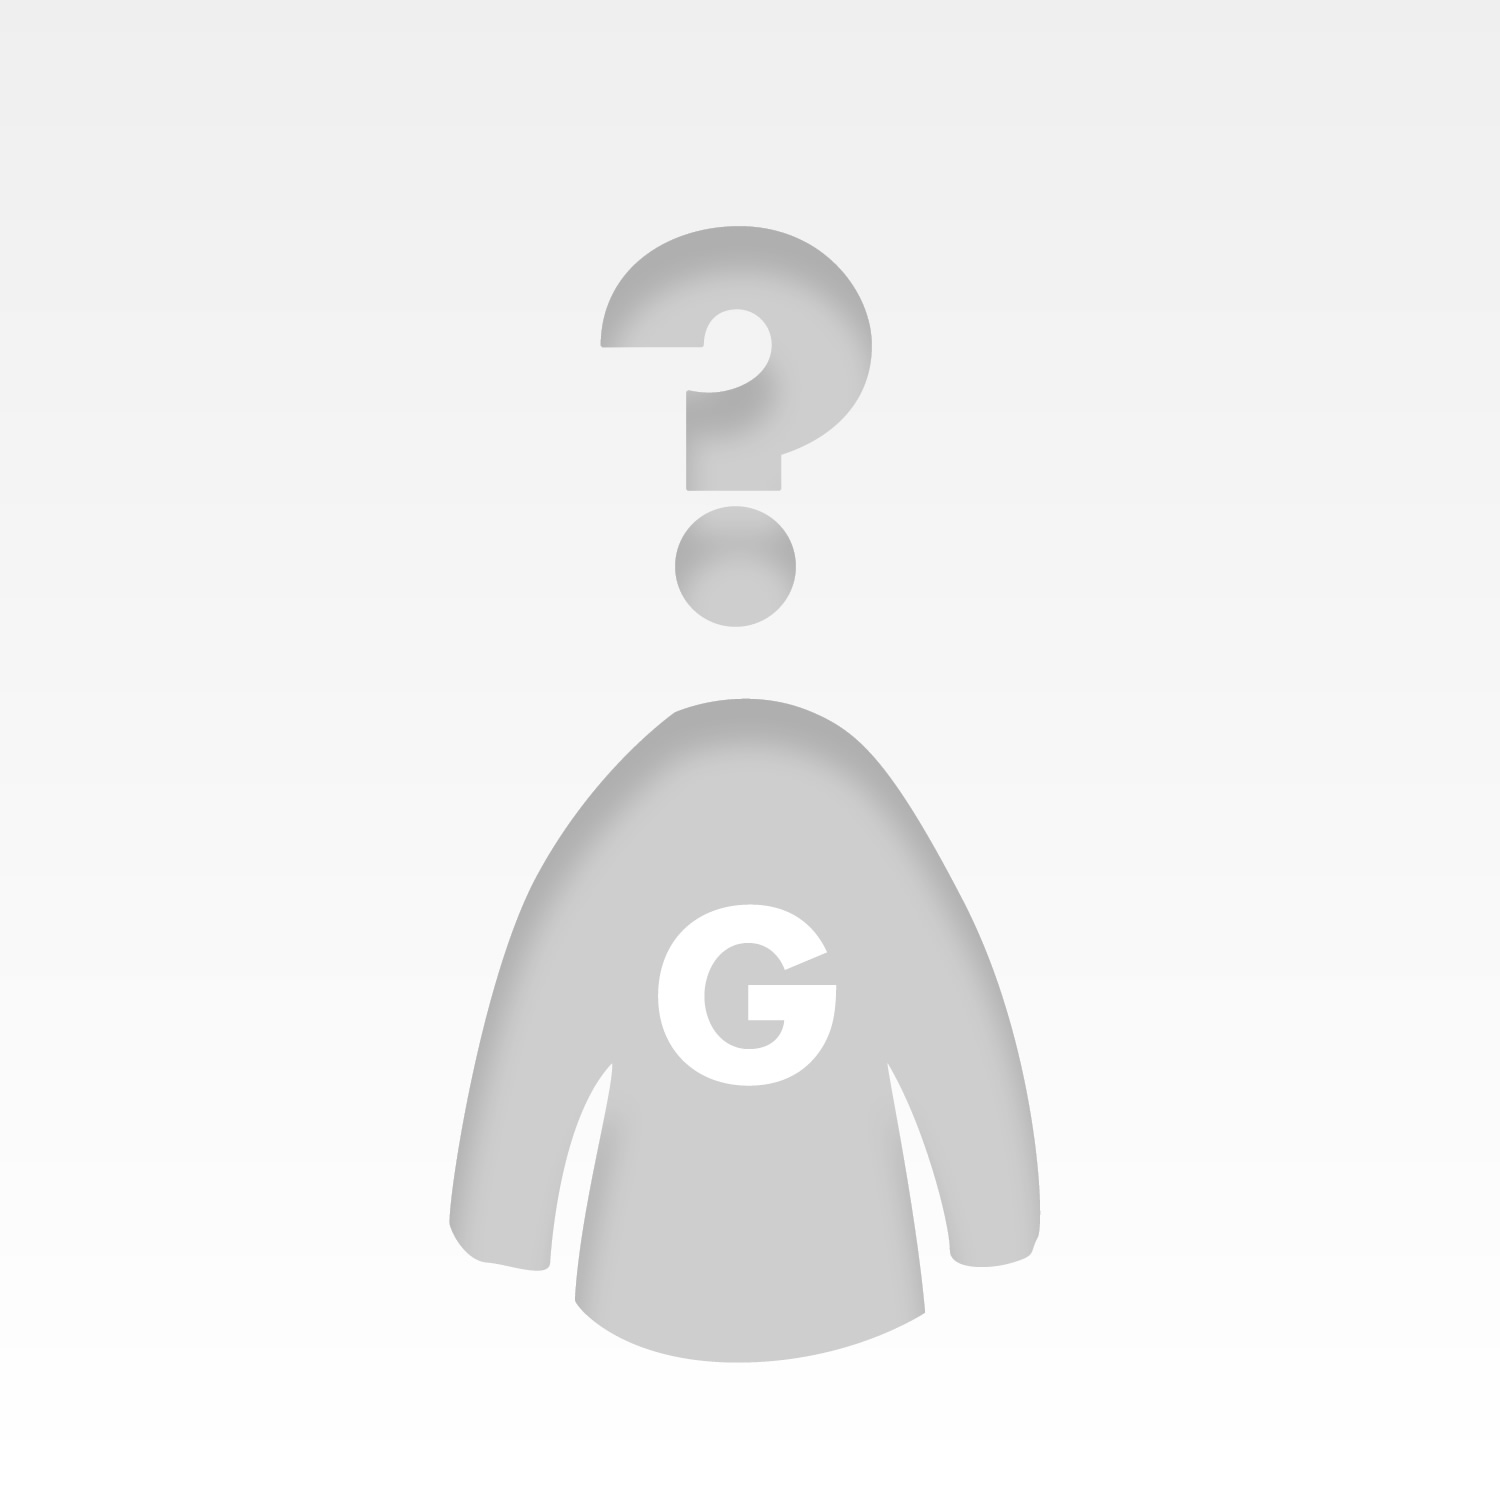 The s001.googleclog2543's avatar